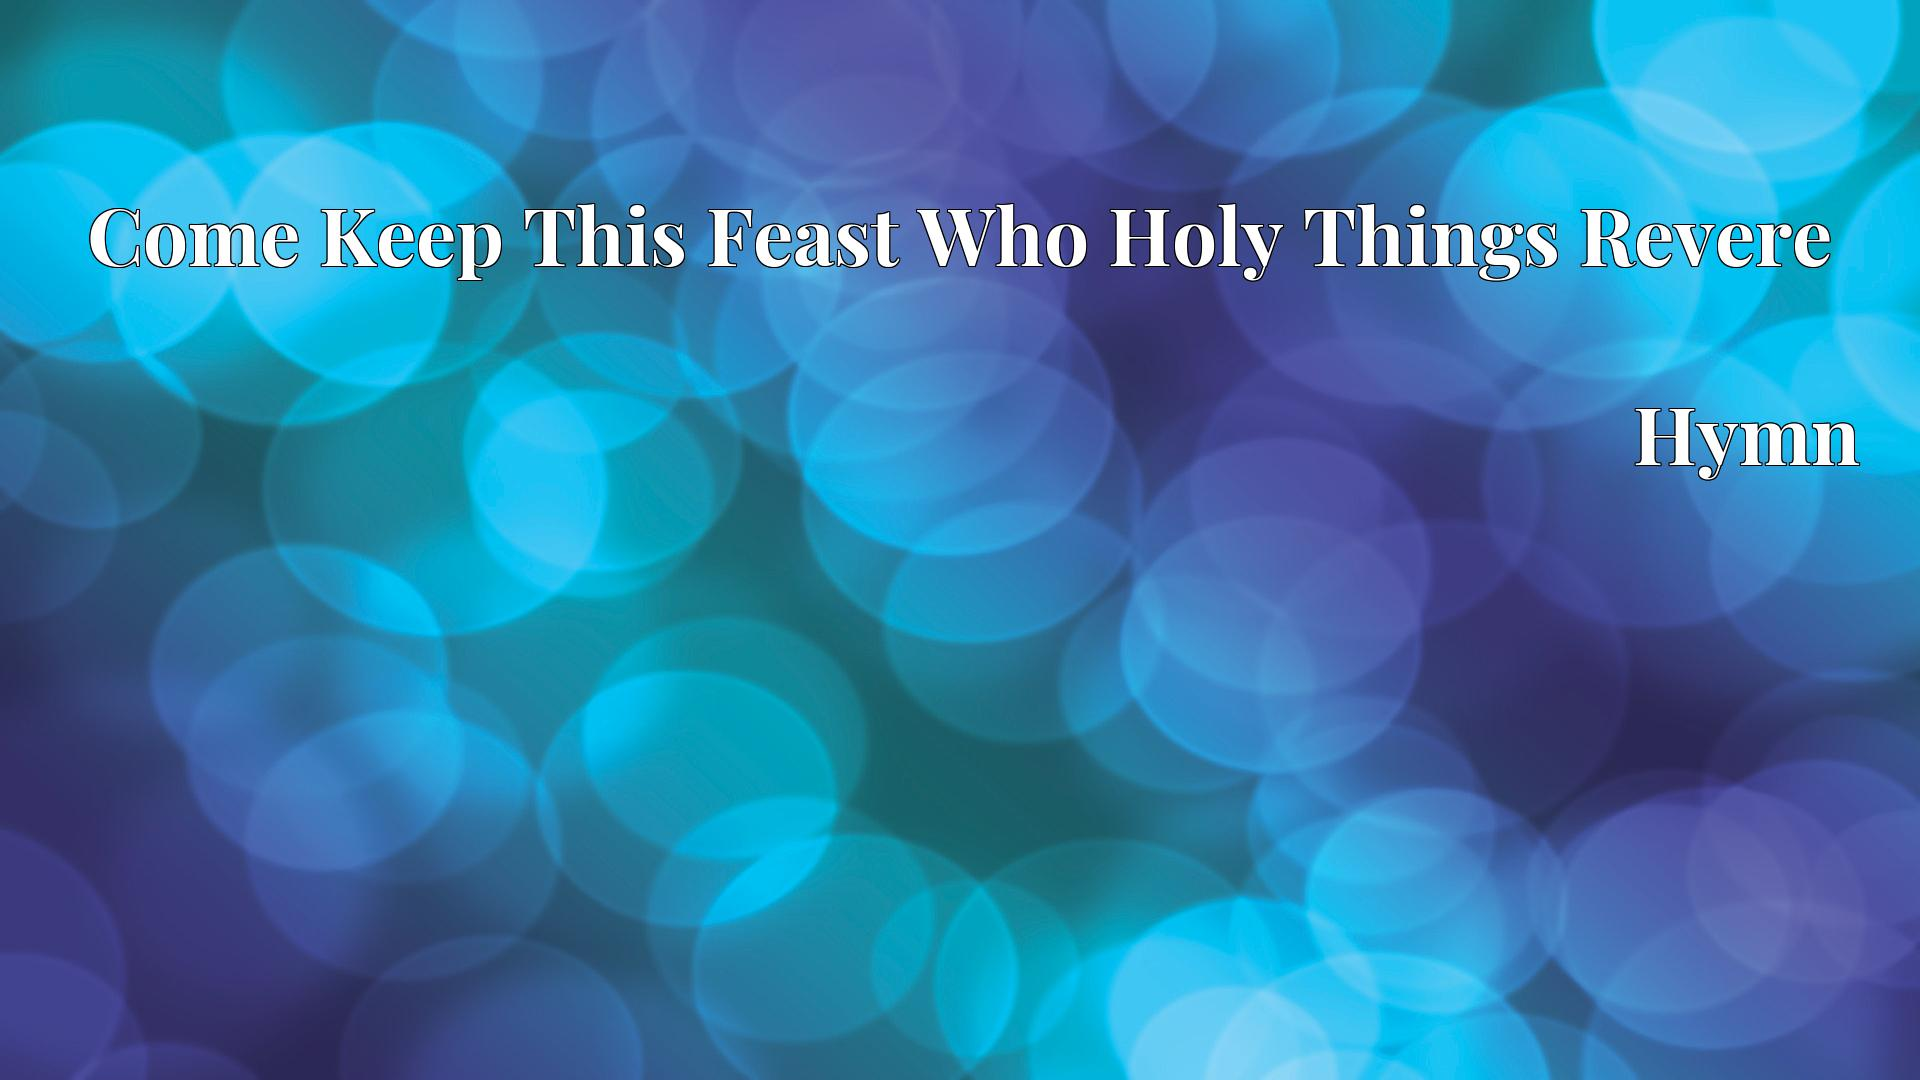 Come Keep This Feast Who Holy Things Revere - Hymn